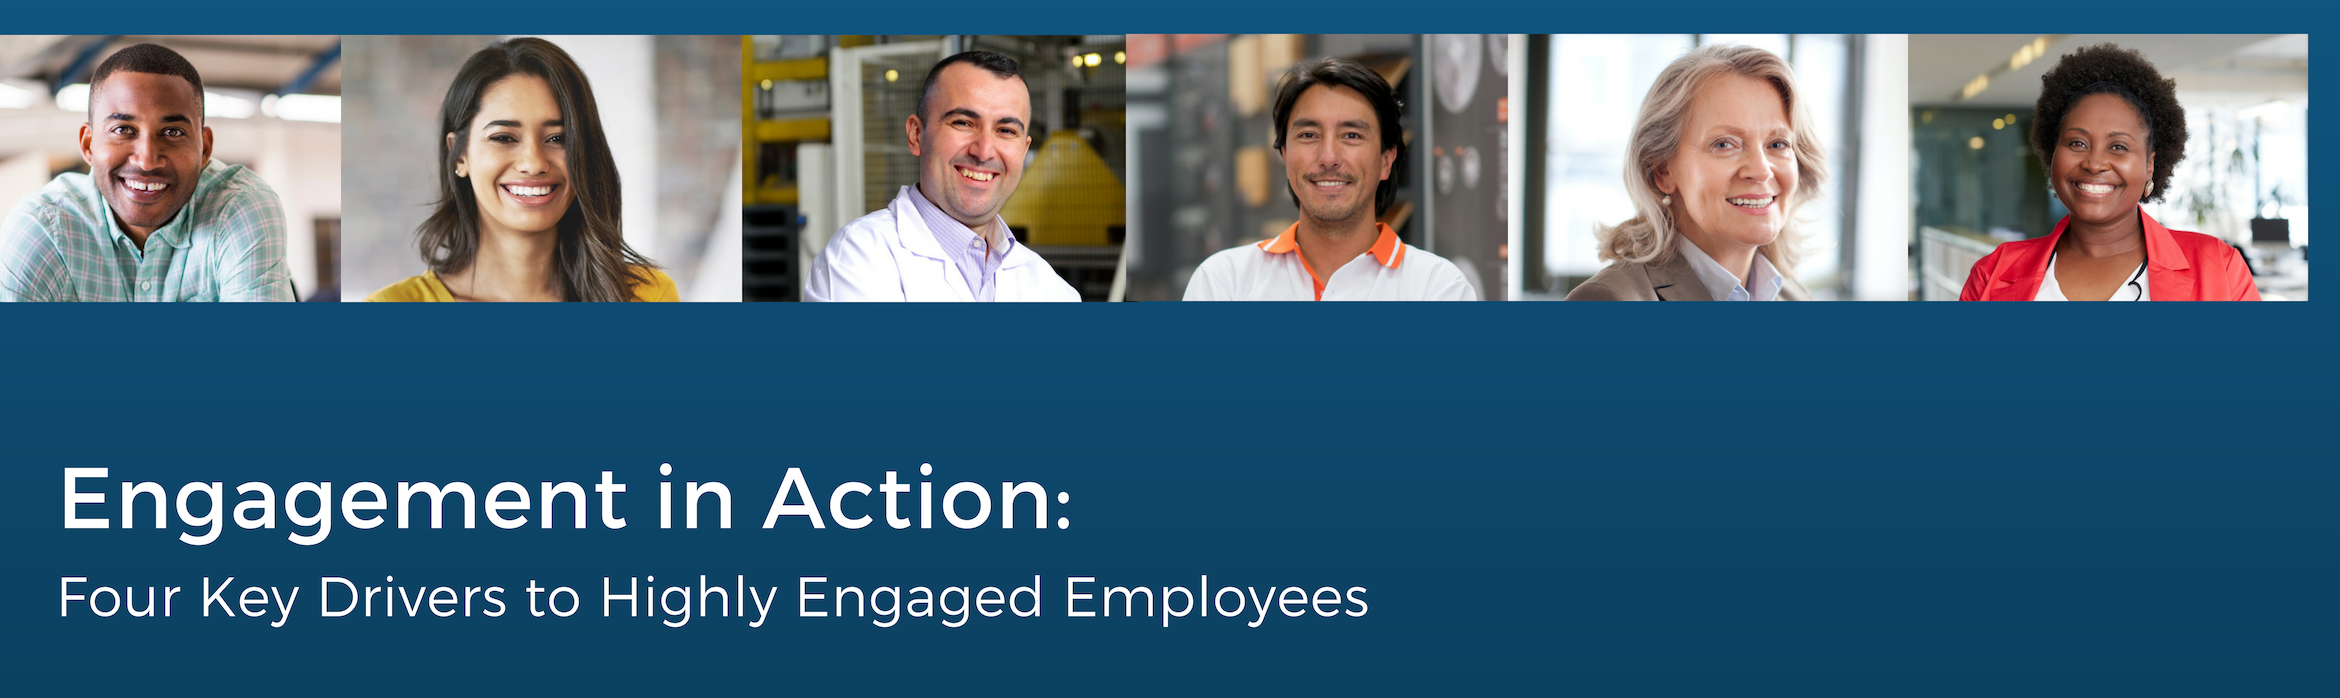 Engagement in Action: Four Key Drivers to Highly Engaged Employees